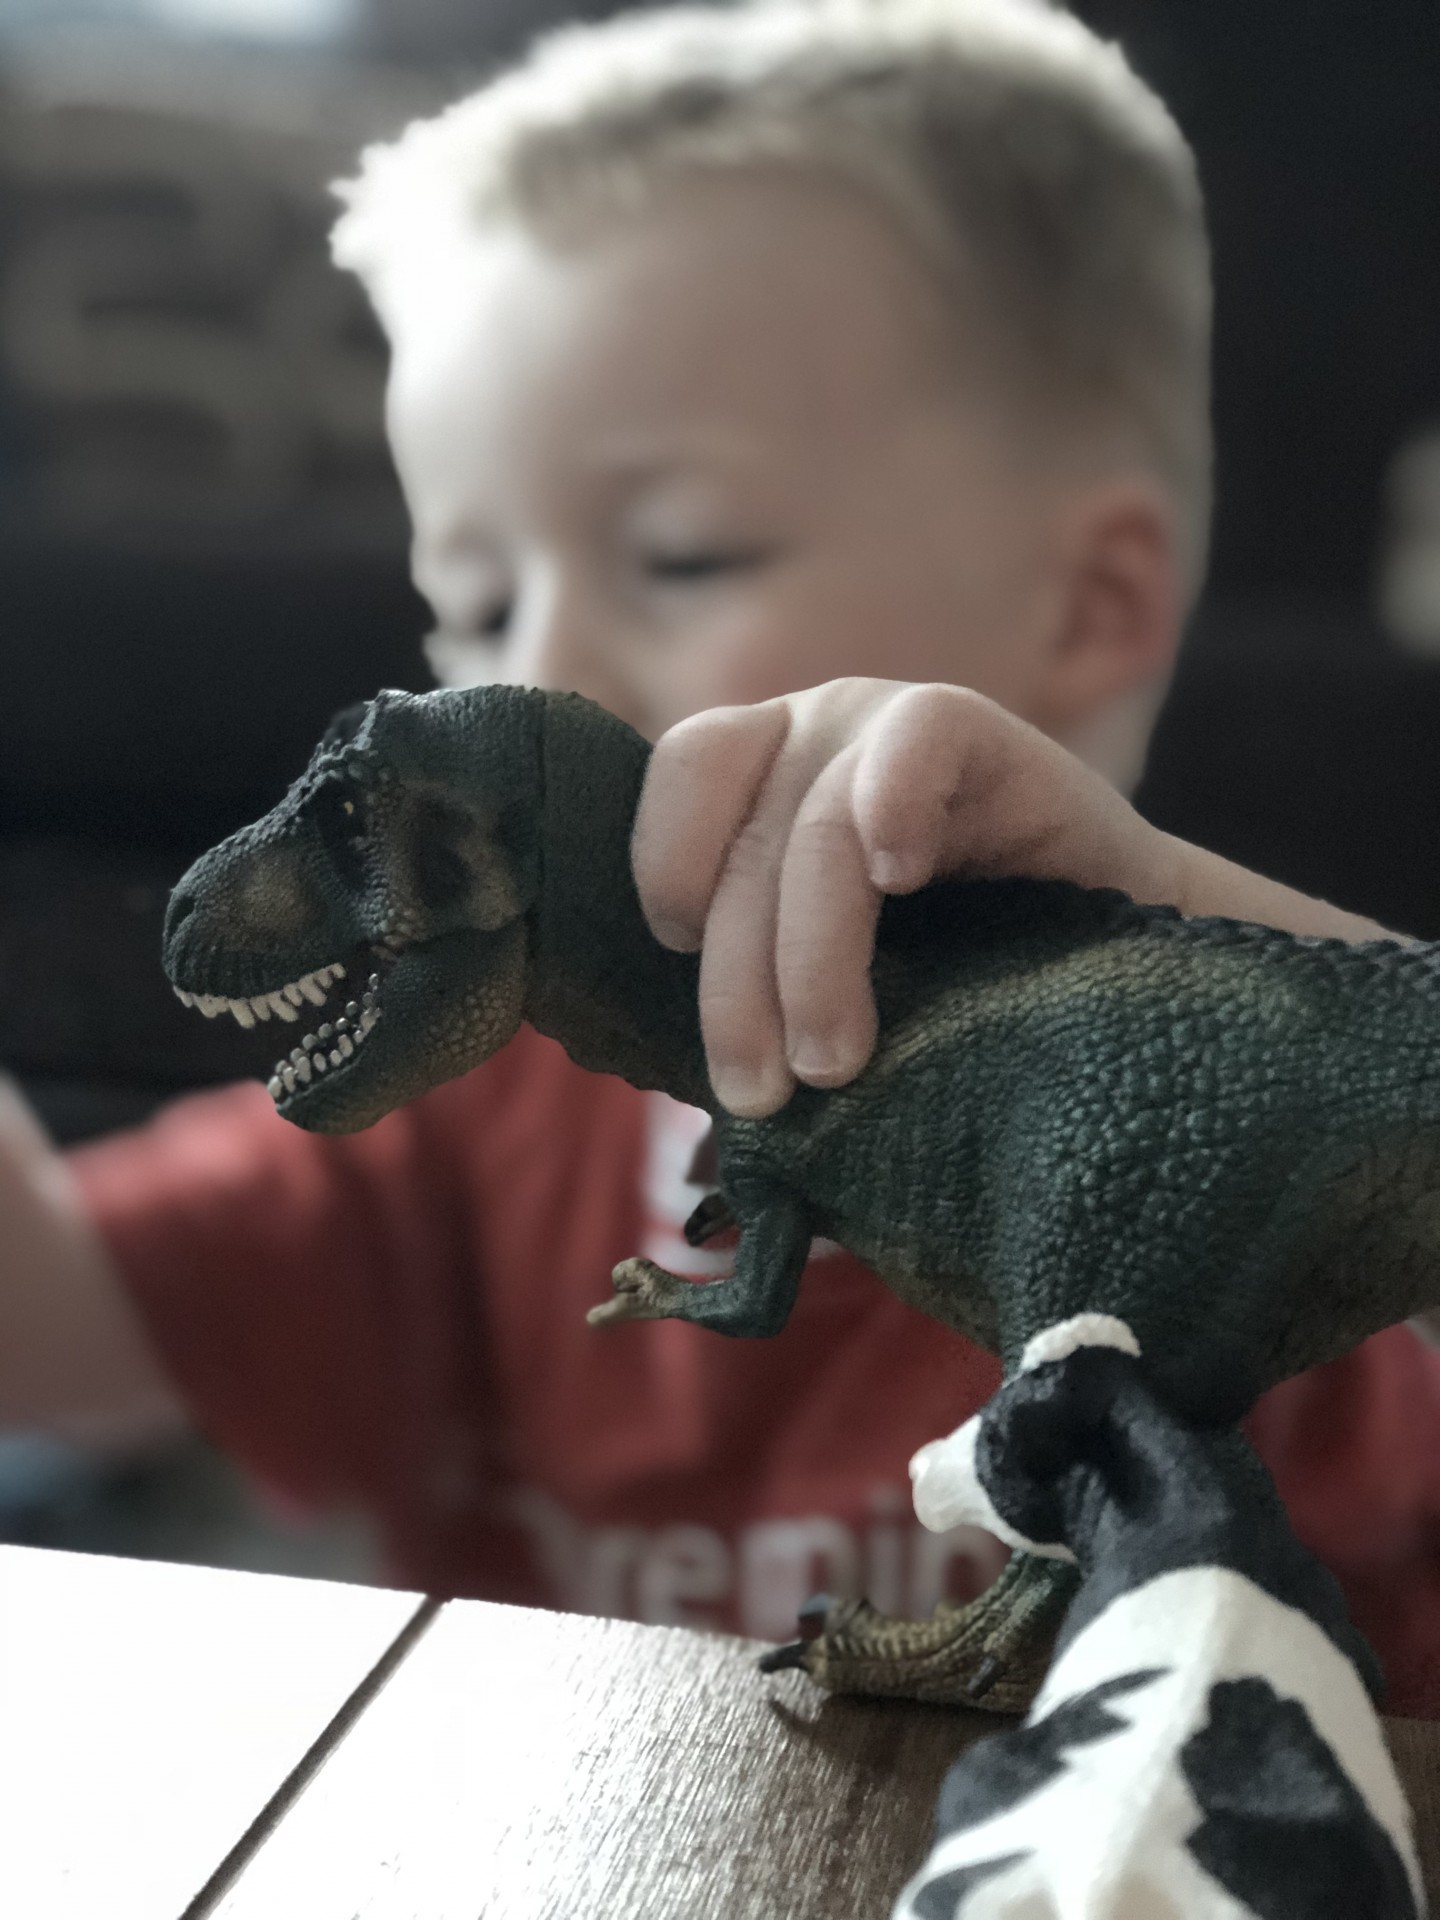 review schleich toys george at asda tyrannosaurus rex t-rex solid imaginative play creativity